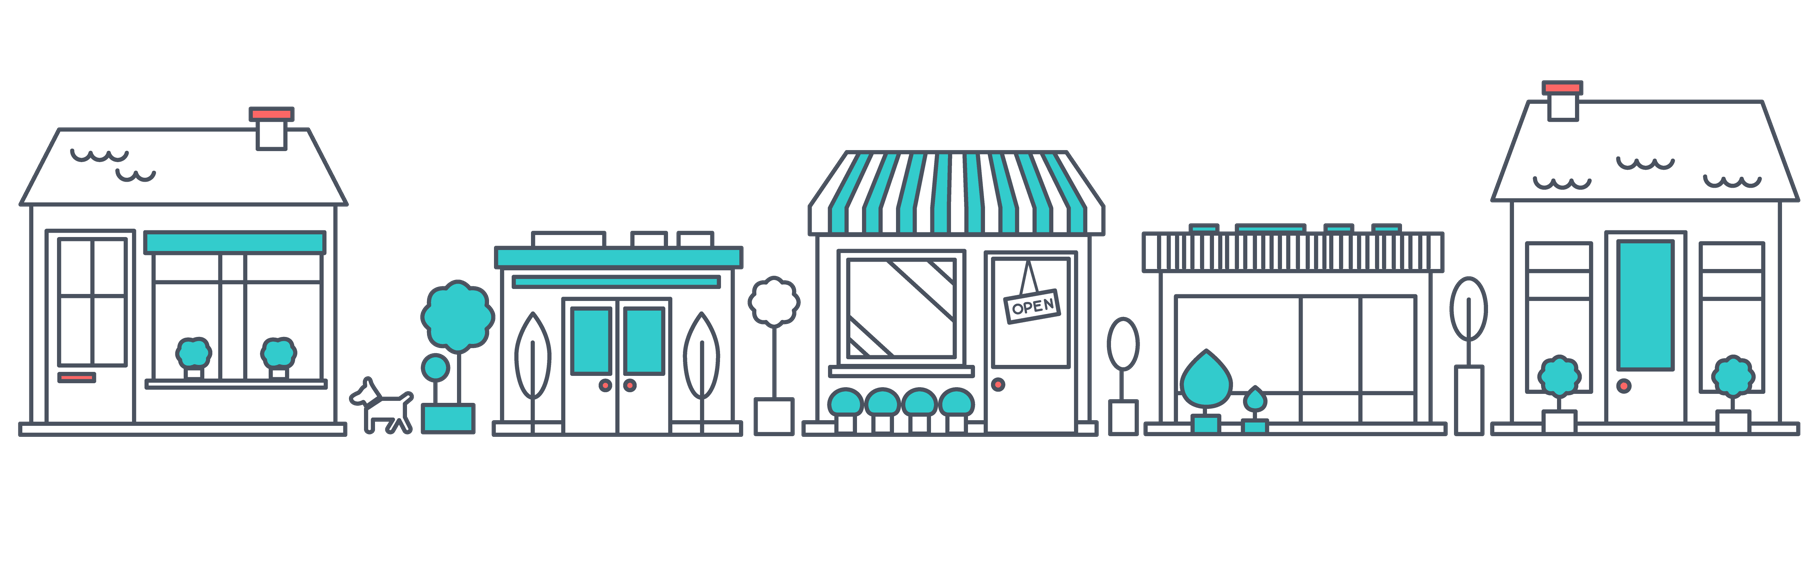 Row of shops clipart clip black and white download Kit - Using Shopify - Shopify Help Center clip black and white download